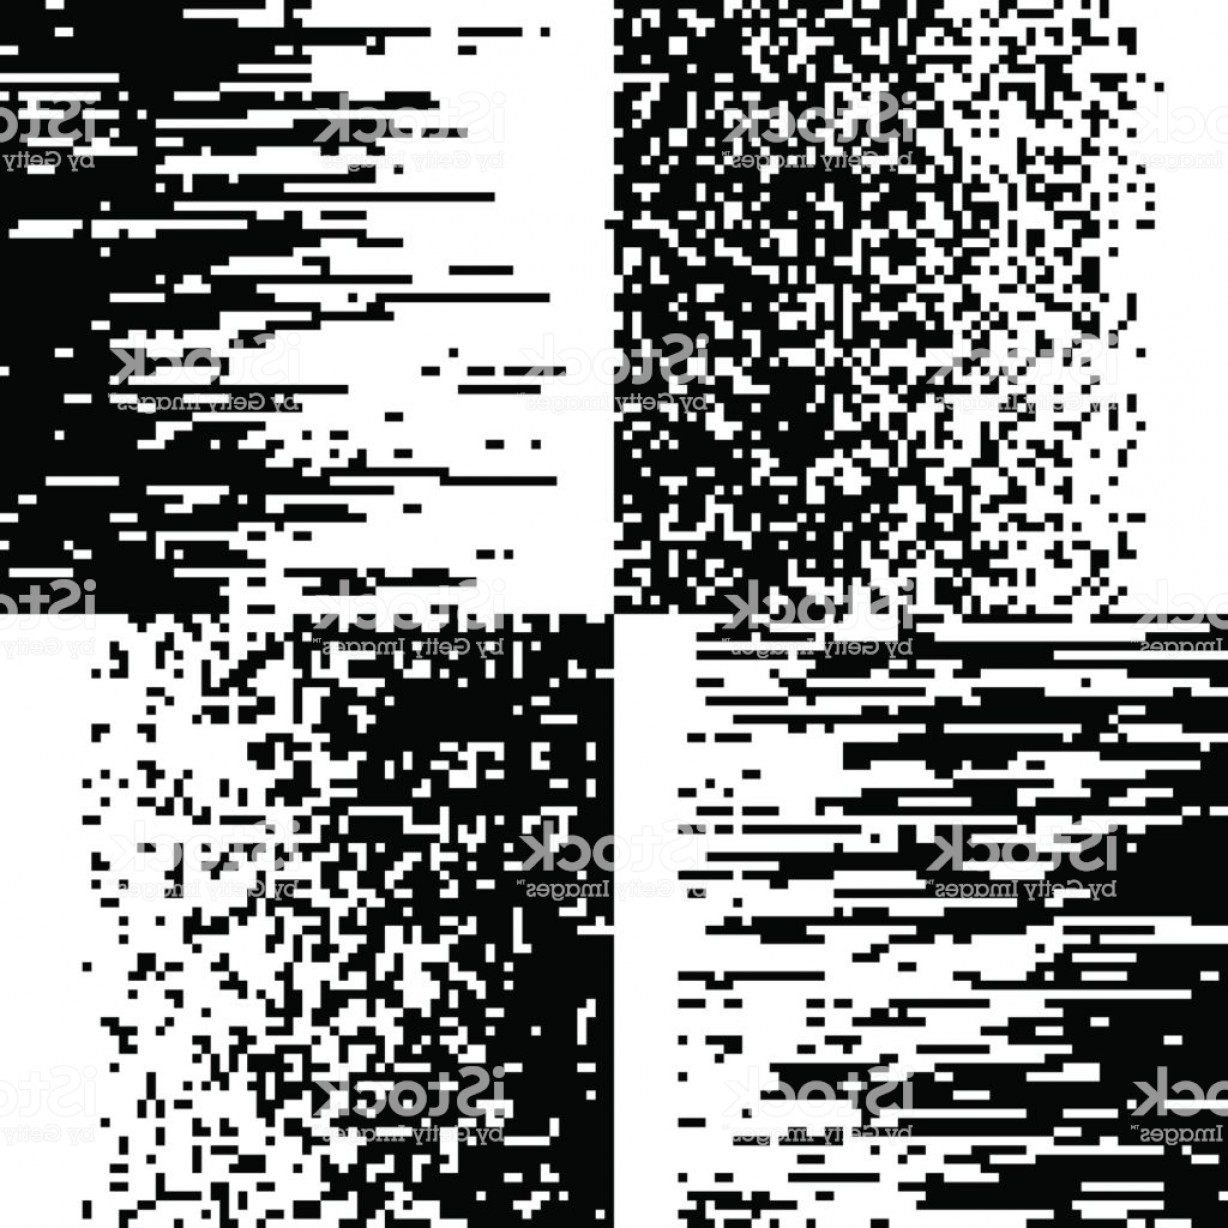 Pixelation Photoshop Vector: Black And White Pixelation Pixel Gradient Mosaic Pixelated Vector Backgrounds Gm